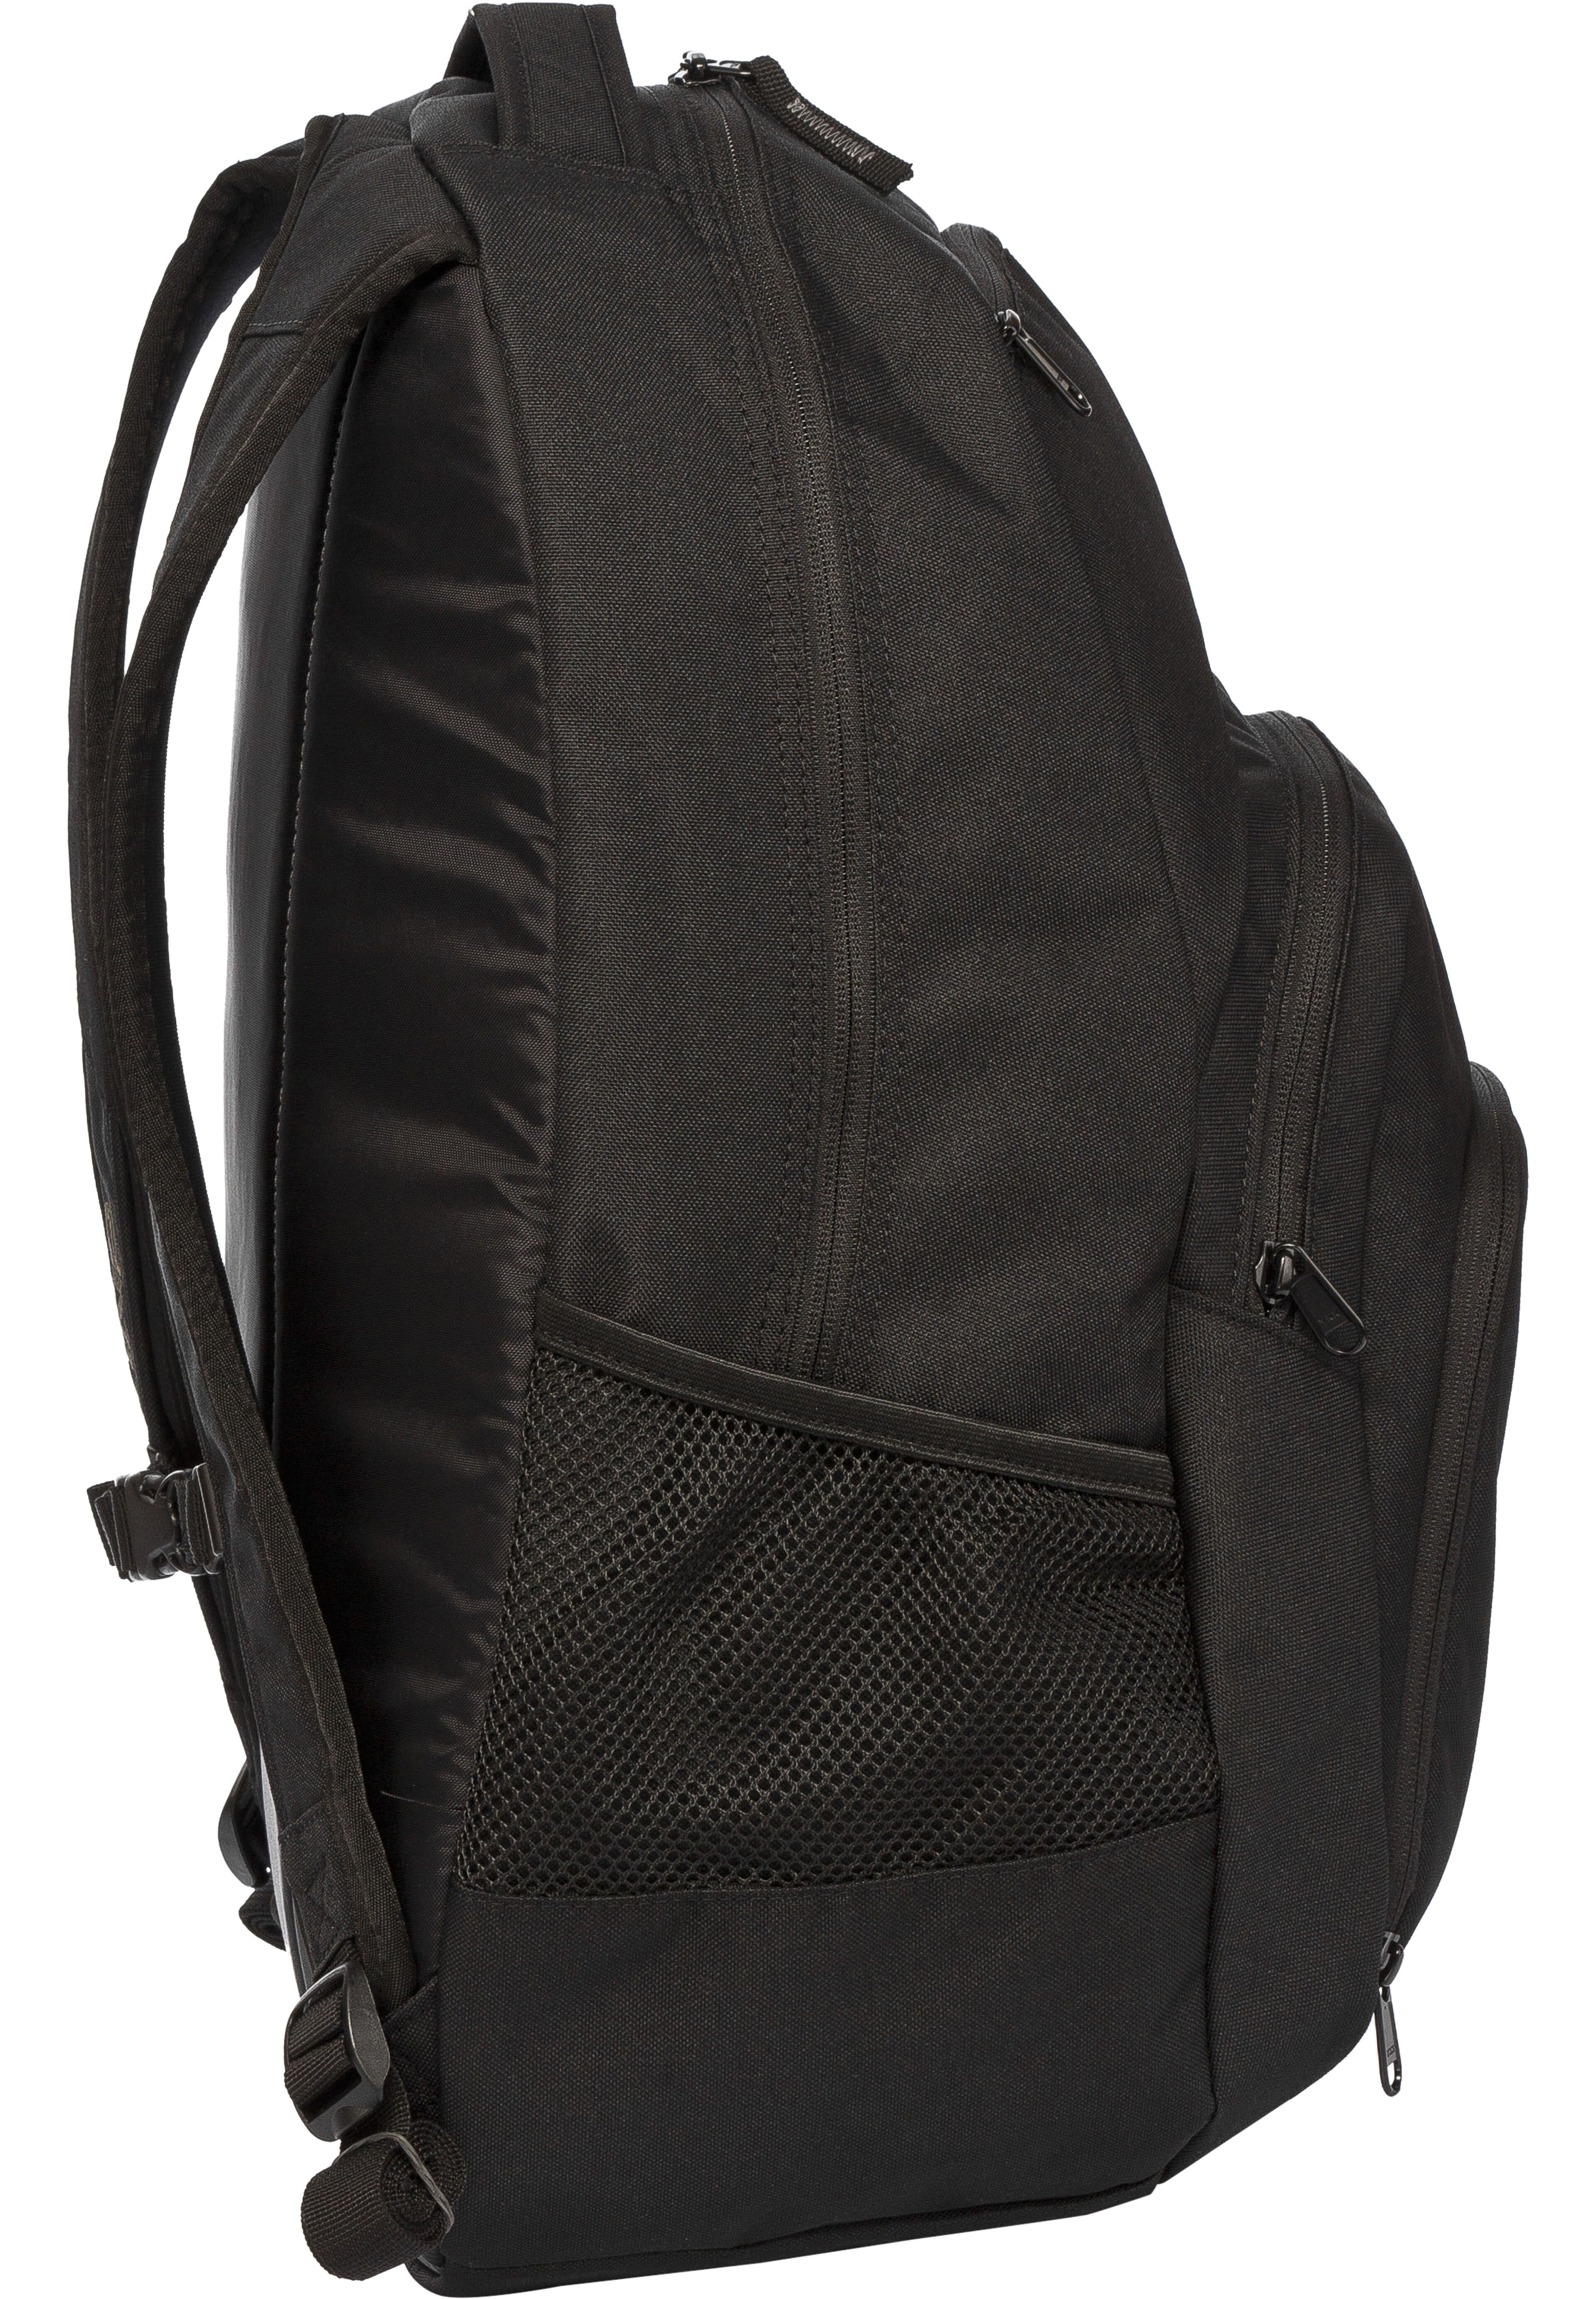 bca37a1a8bfe8 Dakine Campus 33L Backpack tabor Source · Dakine Campus 33L Backpack black  campz de